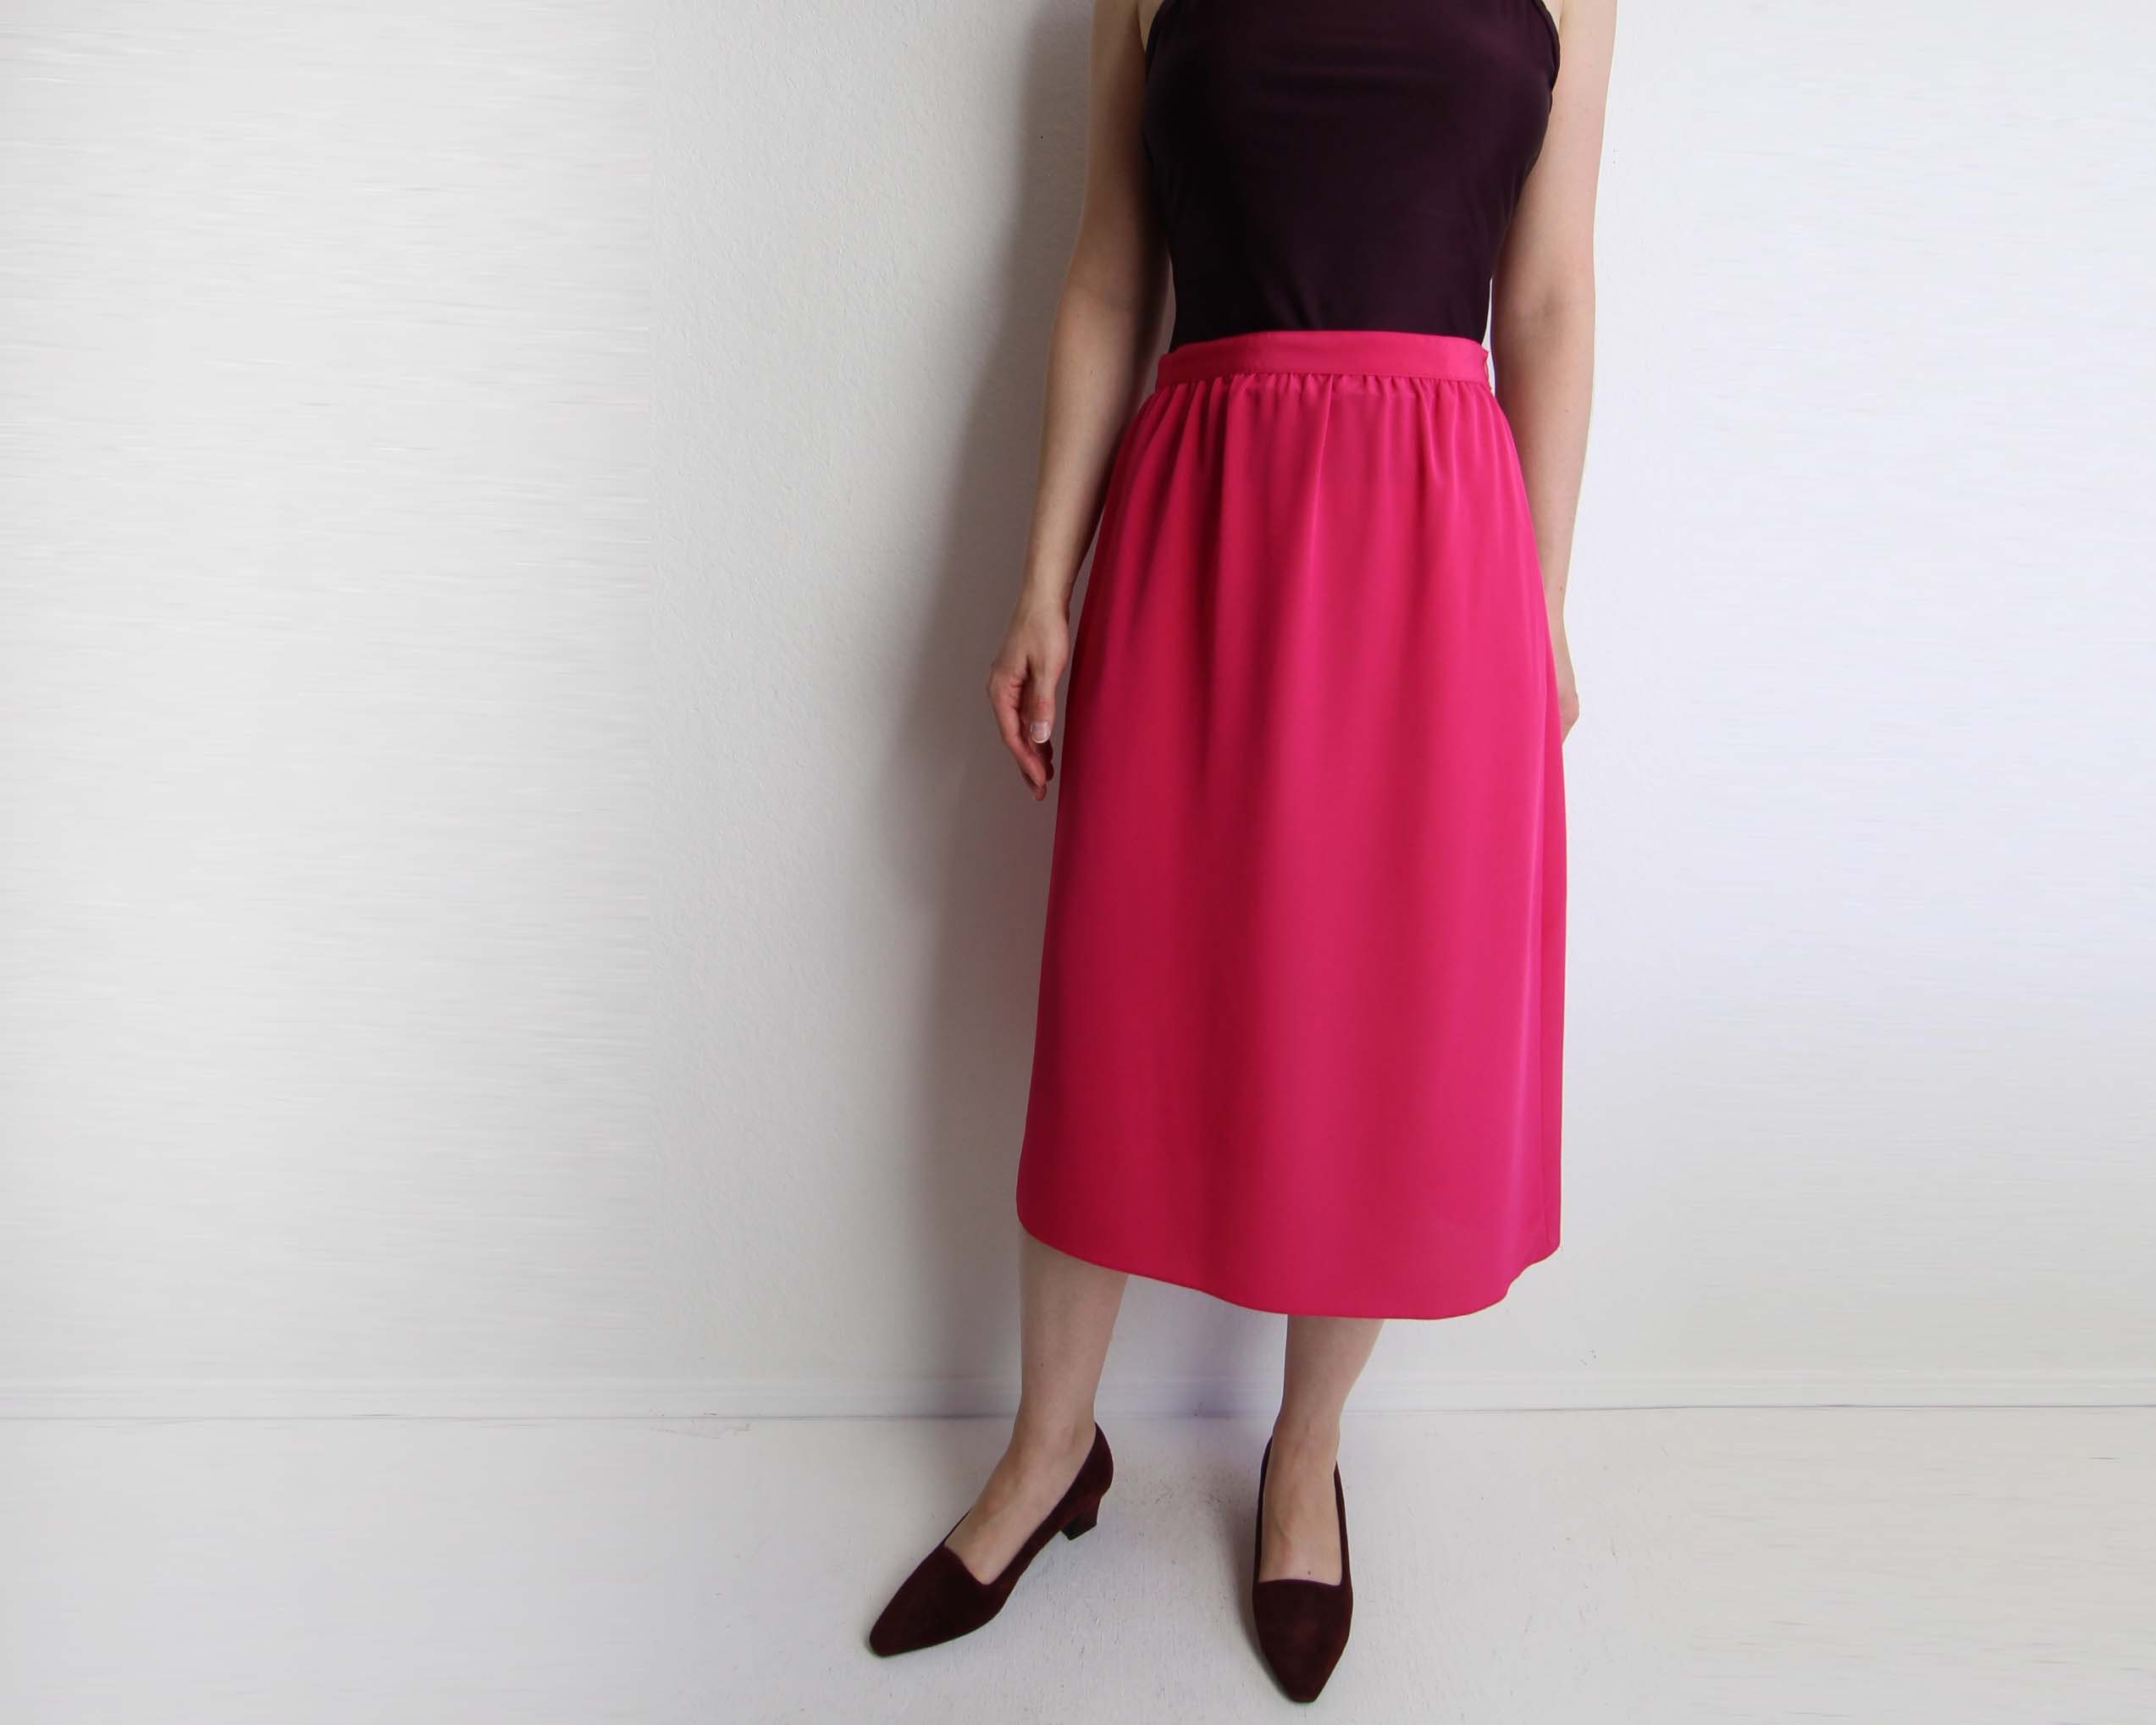 9f412c6332d246 Vintage Pink Skirt Womens Small 1980s Gathered Skirt. gallery photo ...